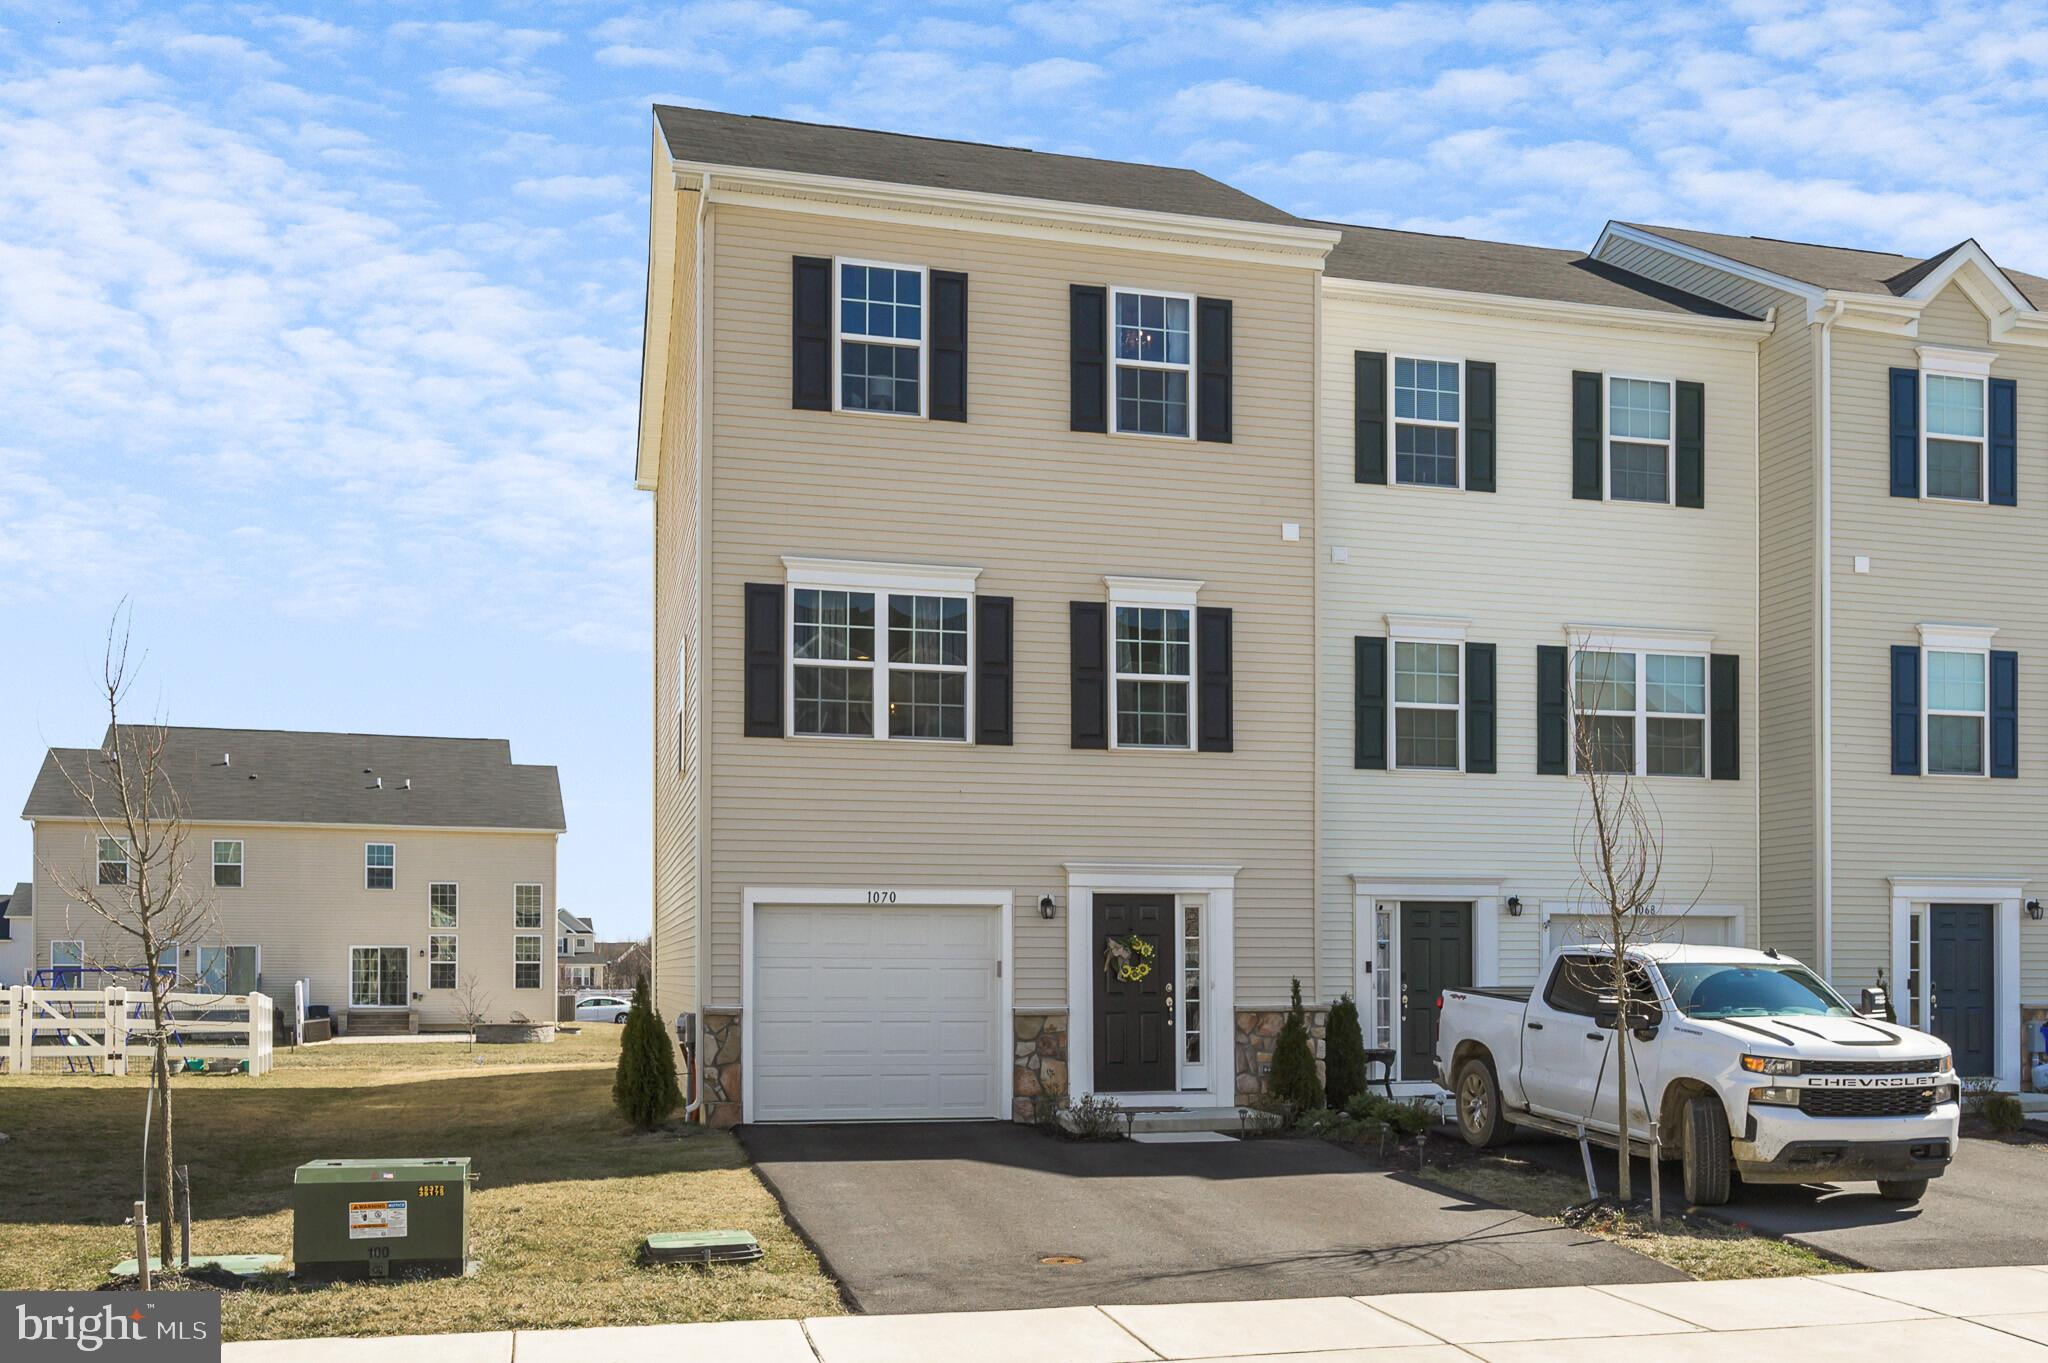 BETTER THAN NEW! WHY WAIT FOR NEW CONSTRUCTION! 1070 Wickersham Way already has upgrades included and is ready to be yours without the wait time of a new build! This gorgeous two year old, end unit, 3-story town home is in exceptional condition. Located in Hyett's Crossing and conveniently located within minutes of route 1 access, just south of the canal. Multiple upgrades have been added including the three story bump out which gives you an additional 11 x 10 feet on all levels. As you enter the home through the foyer, you will find the finished rec room which is perfect for entertaining guests. There is a sliding door that leads to a beautiful paved patio and spacious backyard. As you make your way upstairs, you will find the open concept living area complete with living room, kitchen, dining area, and breakfast nook. You will also notice the beautiful hardwood floors throughout the main level. The eye catching kitchen offers you granite countertops, stainless steel appliances and a 7-foot island with plenty of storage! There is also a powder room conveniently located on the main level. On the top level, you will find the master bed room with a walk in closet and sitting room. In the master bath you will find a dual vanity and the upgraded walk in shower with dual shower heads. 2 additional bedrooms, a hall bath and linen closet complete top level. With lots of features and upgrades this home won't last. Come out today before it's SOLD!